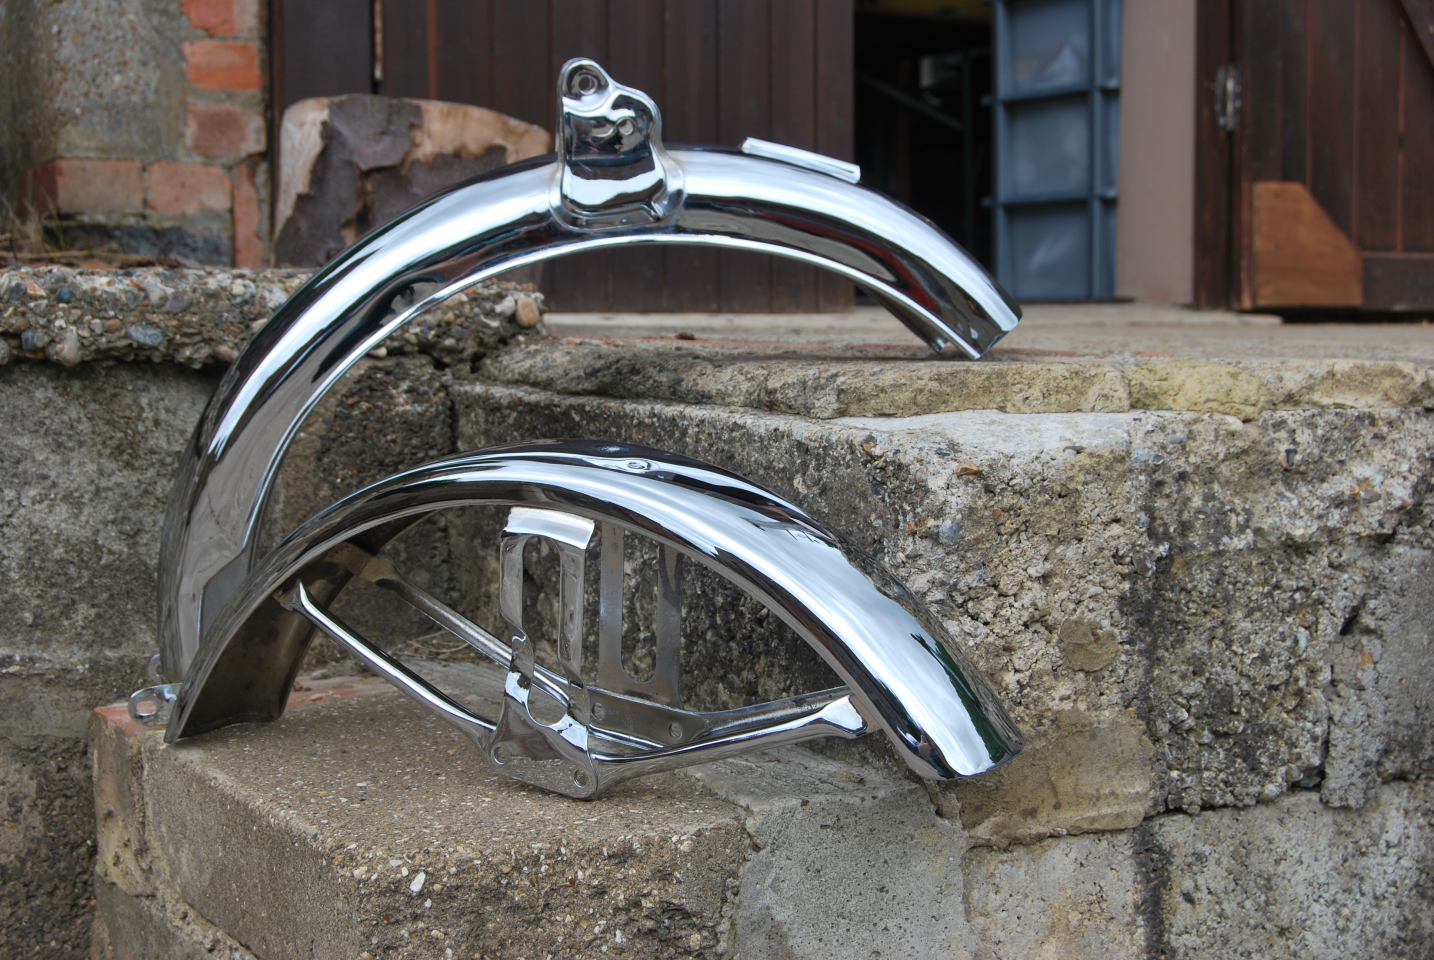 Picture of a motorcycle mudguards re chromed.